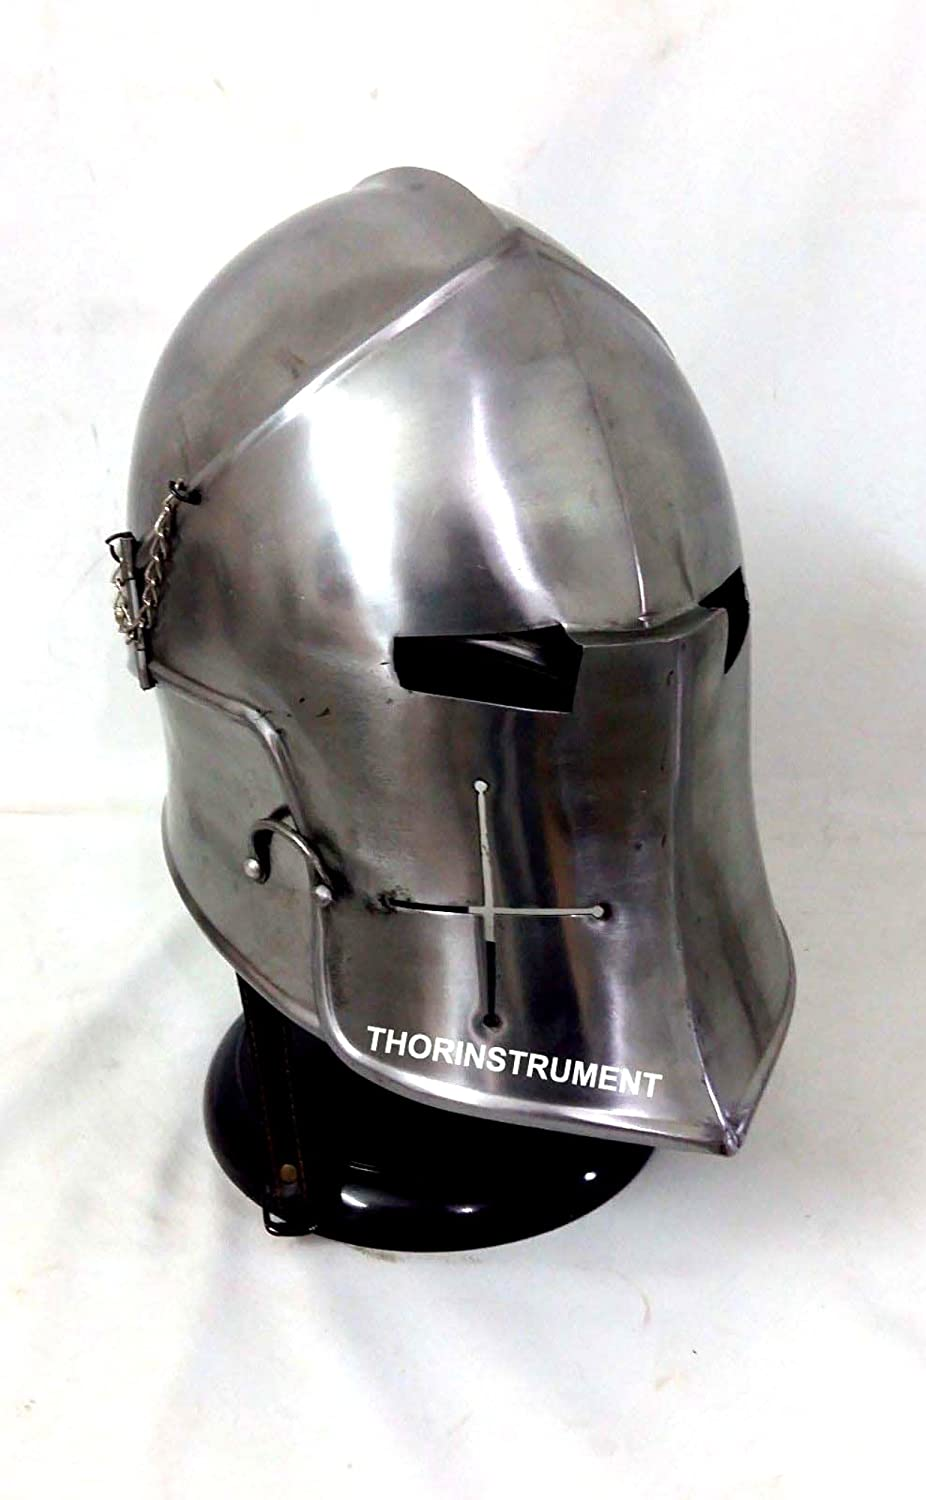 THORINSTRUMENTS Armor Barbuta Helmet Halloween Costume with Free Stand KG1737